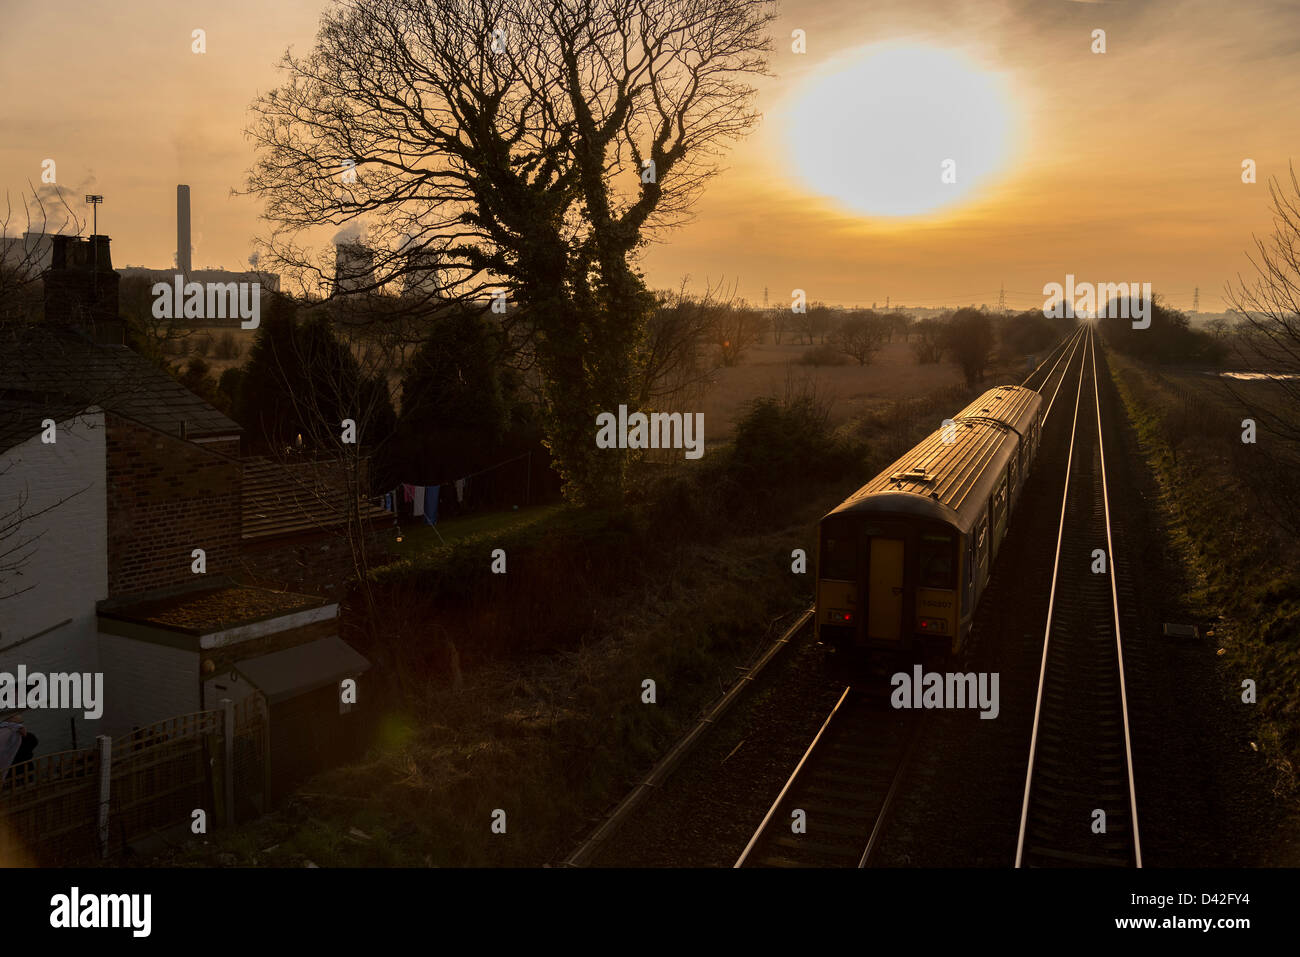 Trains converging railway lines in the evening sun. - Stock Image